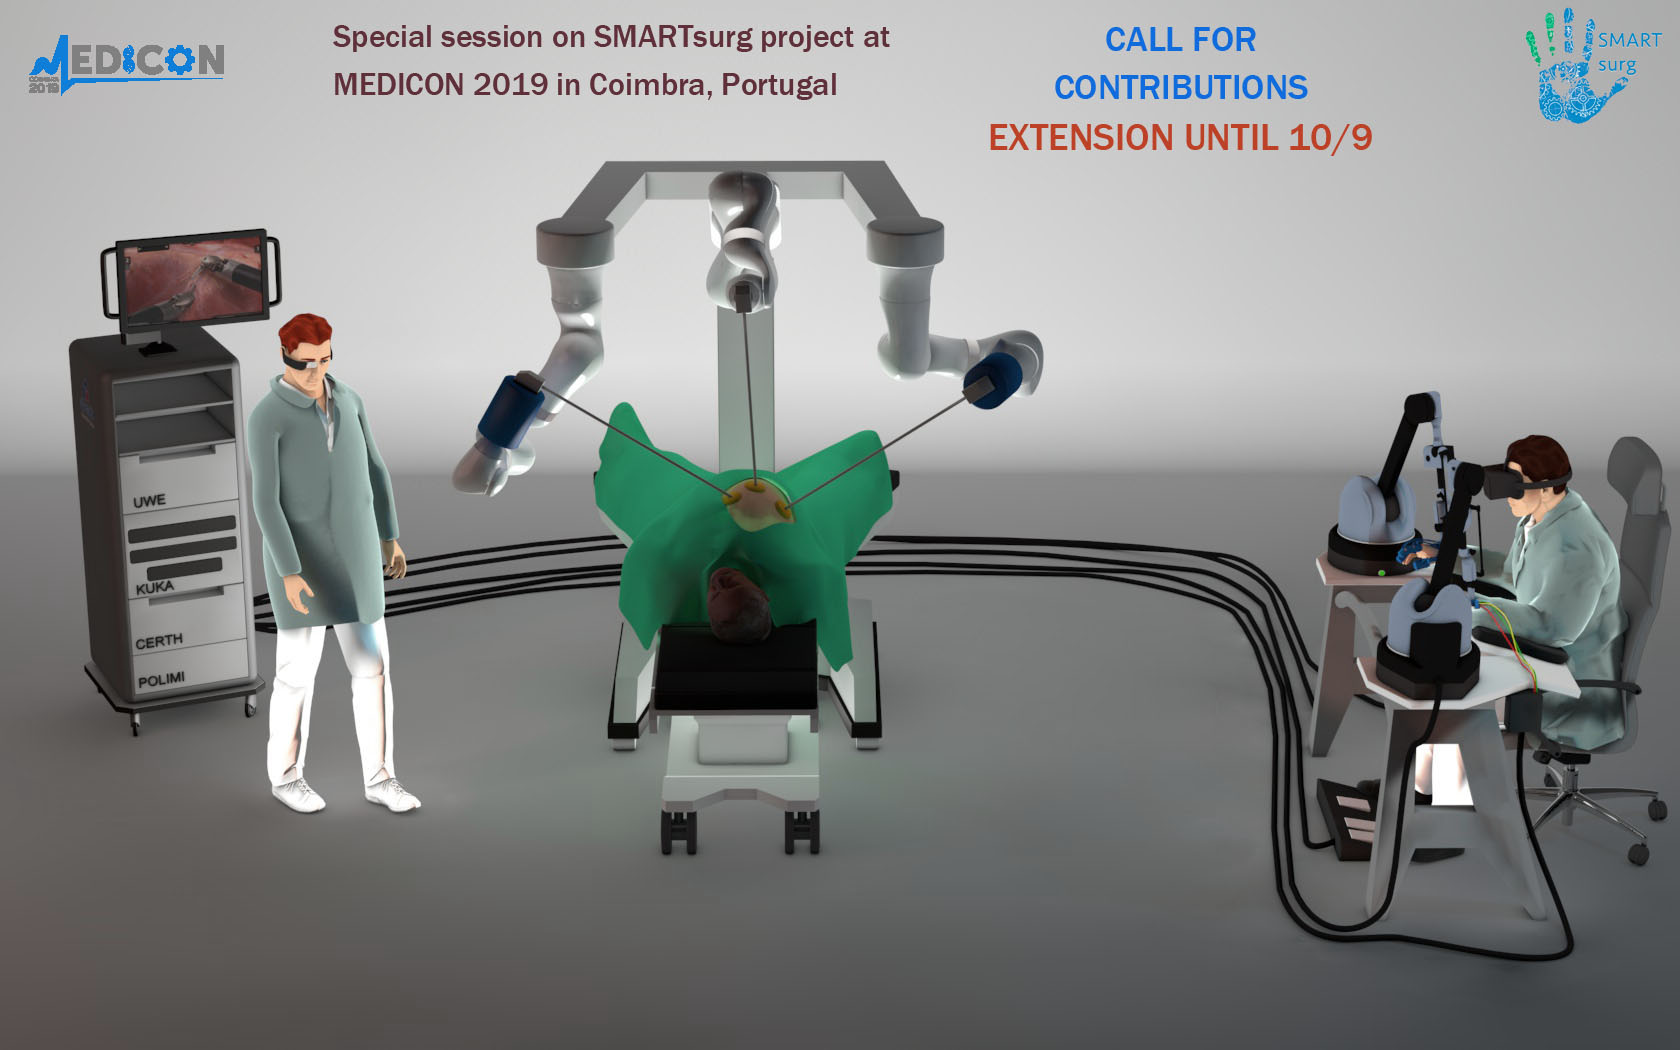 EXTENSION until 10/9 - Call for contributions - Special Session on SMARTsurg @ MEDICON 2019